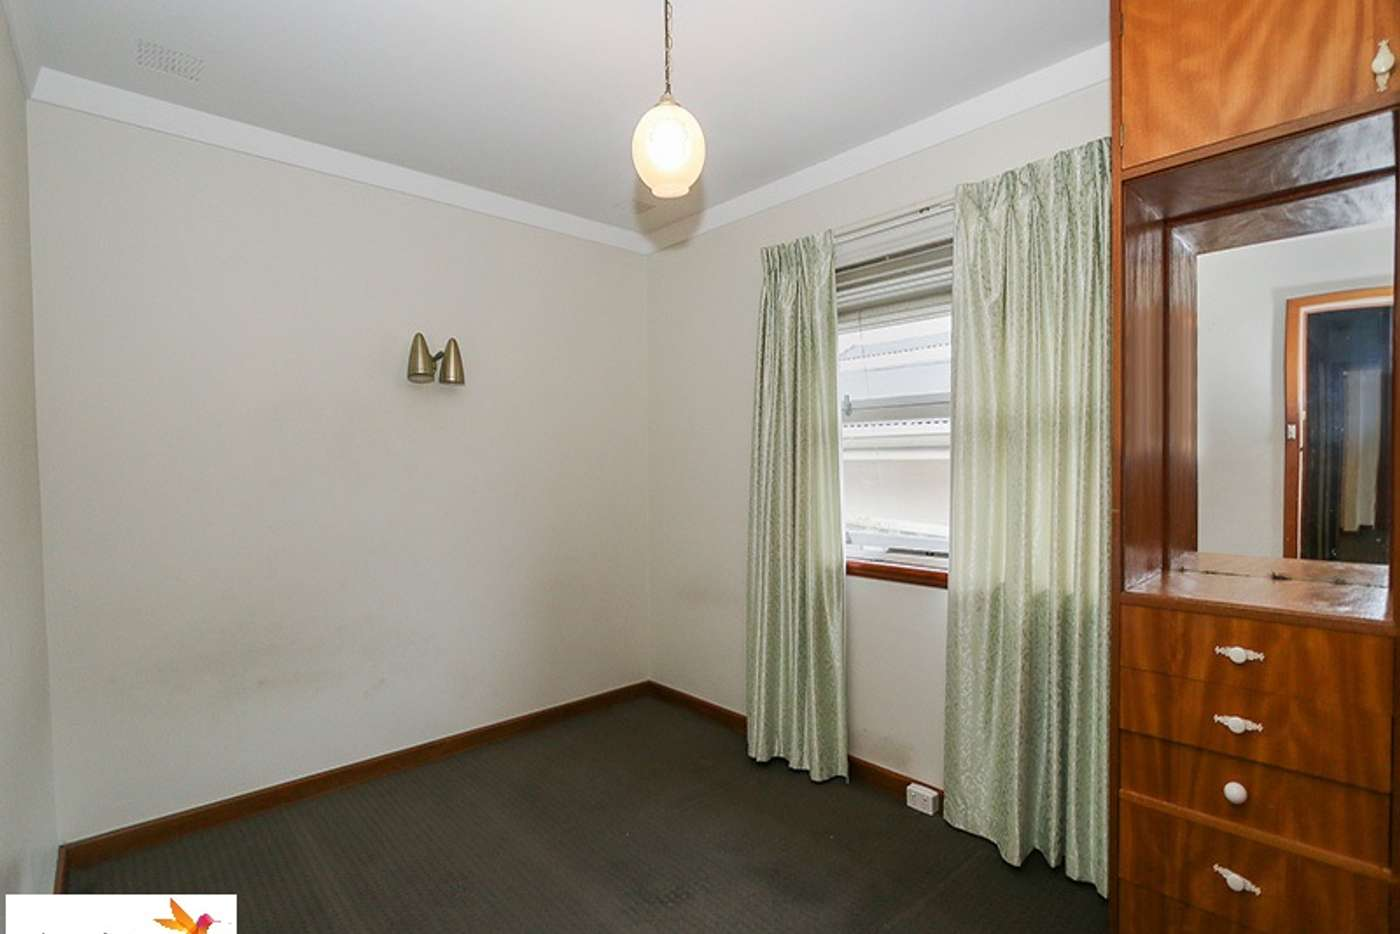 Sixth view of Homely house listing, 13 Canna Way, Ardross WA 6153